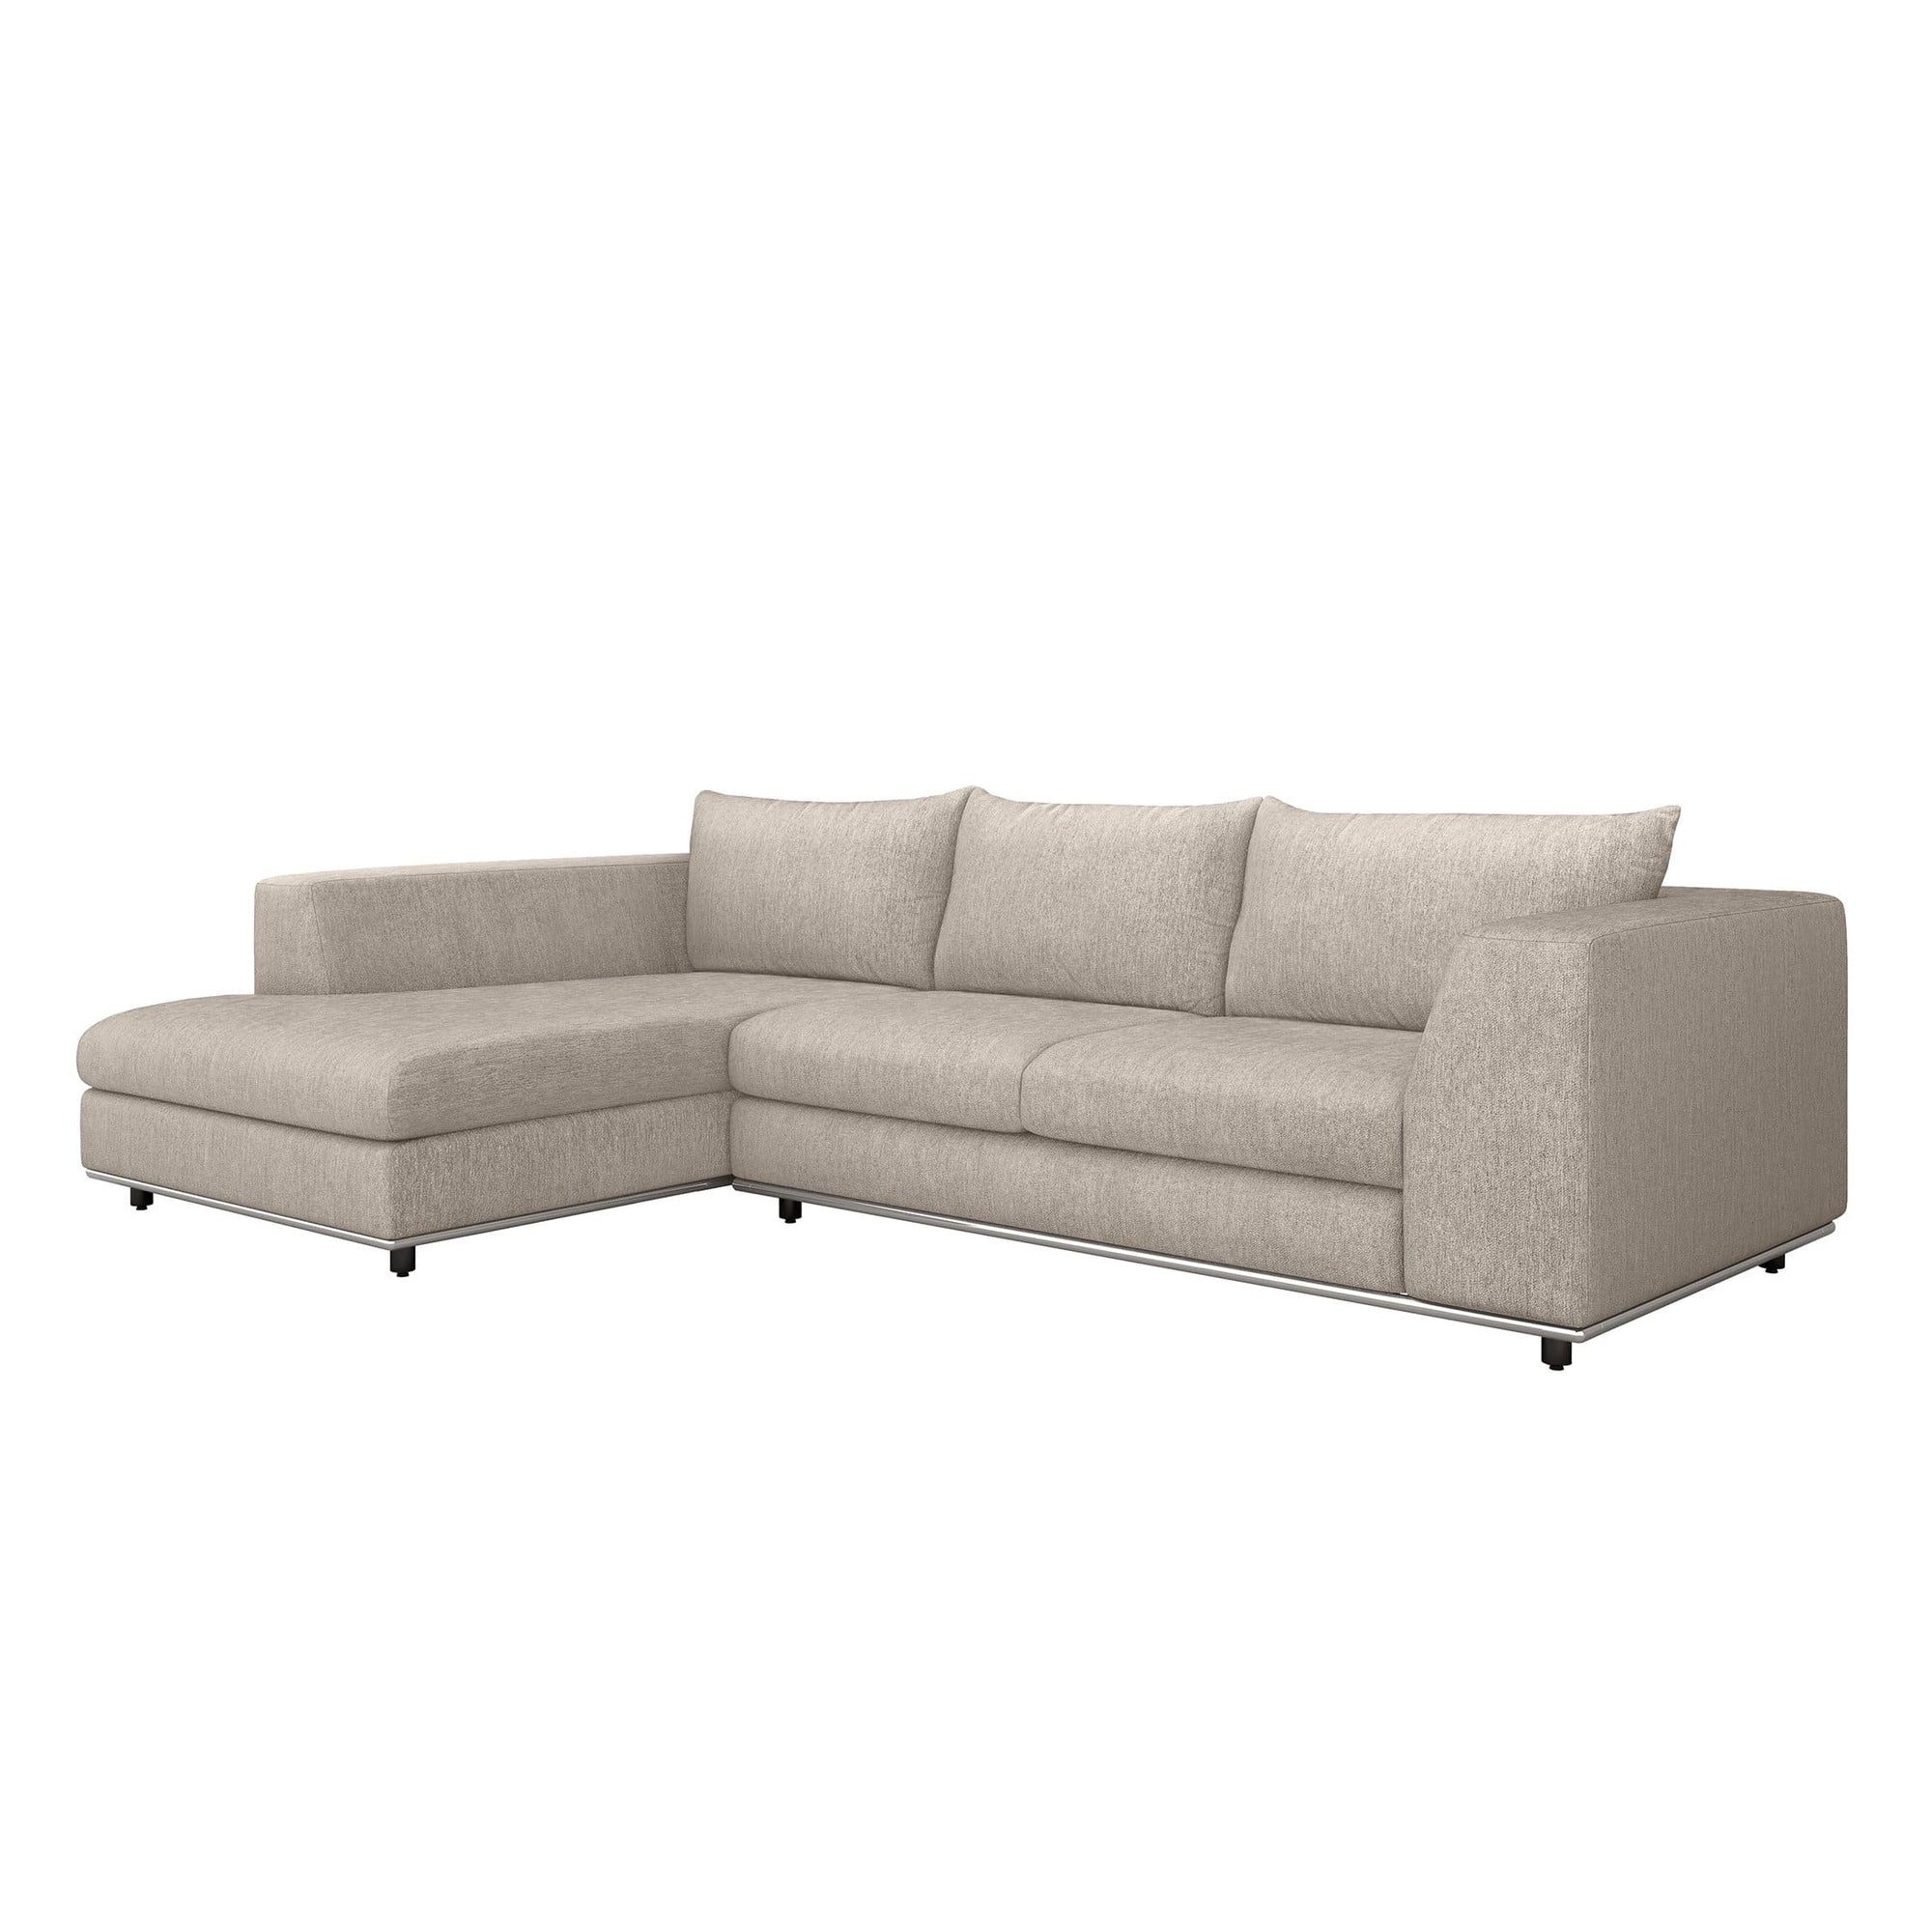 Interlude Home Interlude Home Comodo Left Chaise 2 Piece Sectional - Light Brown 199018-2